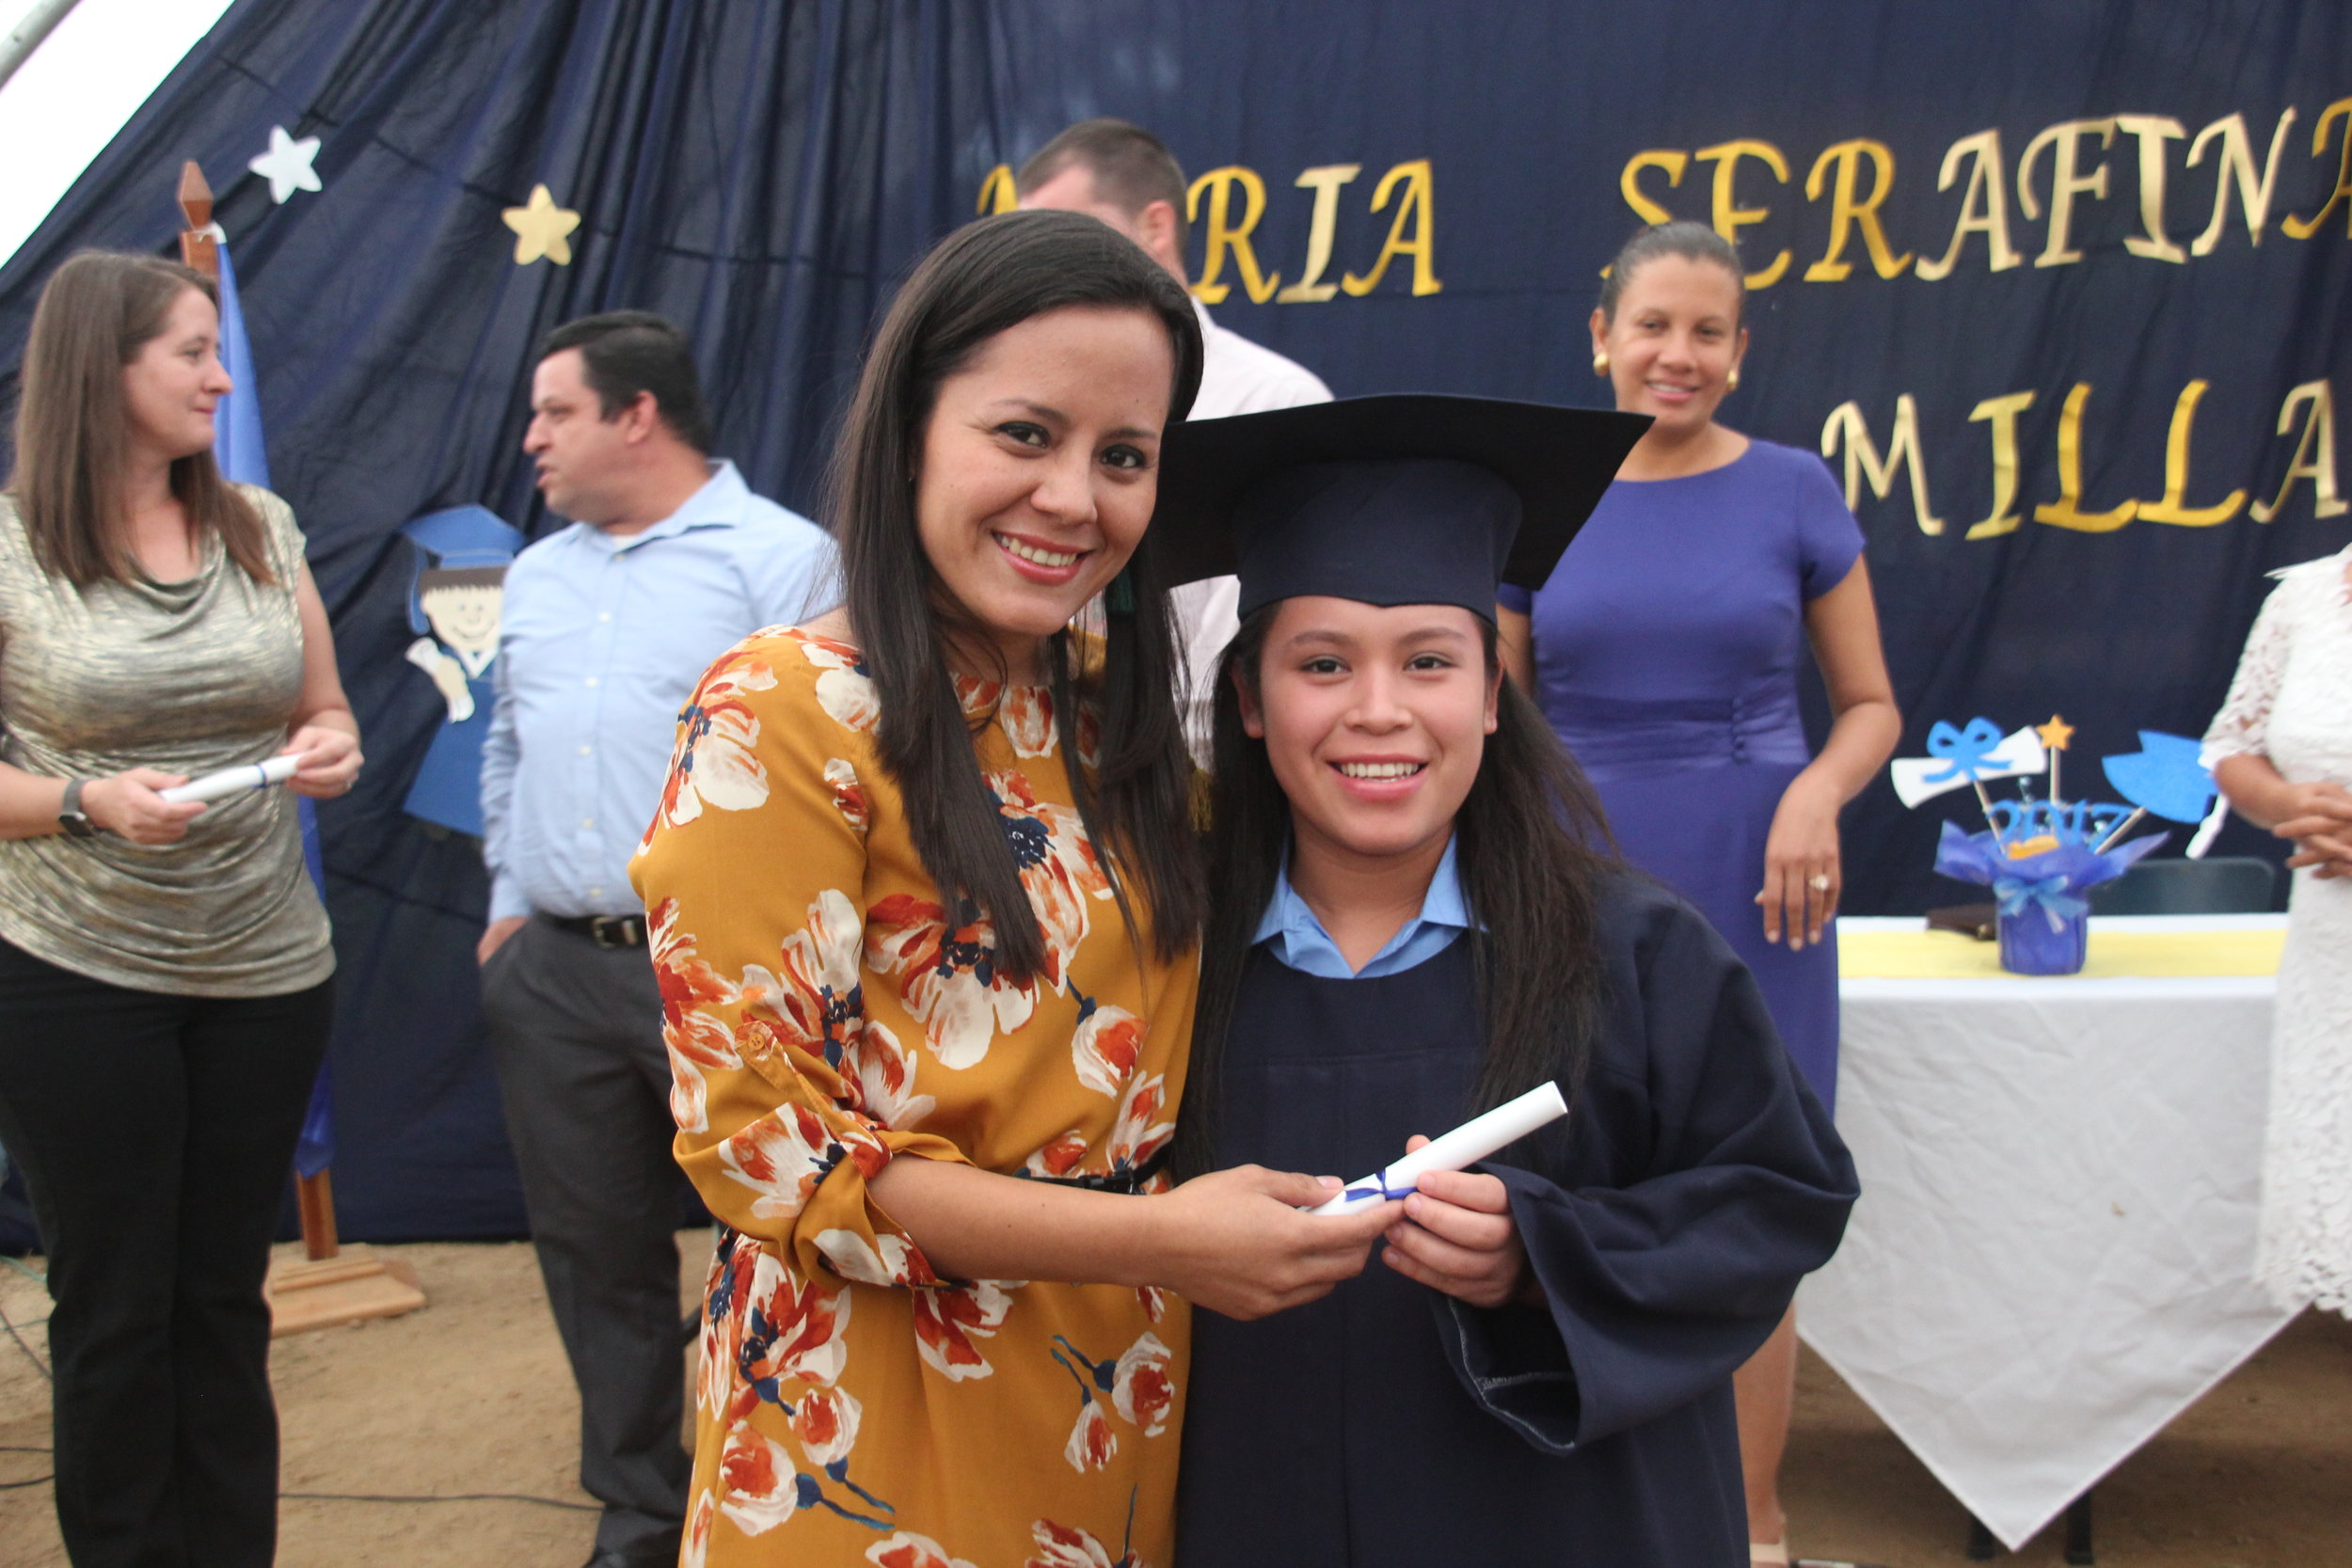 Virginia at her 6th Grade Graduation Ceremony, which took place this December at the Amigos de Jesús Bilingual School.